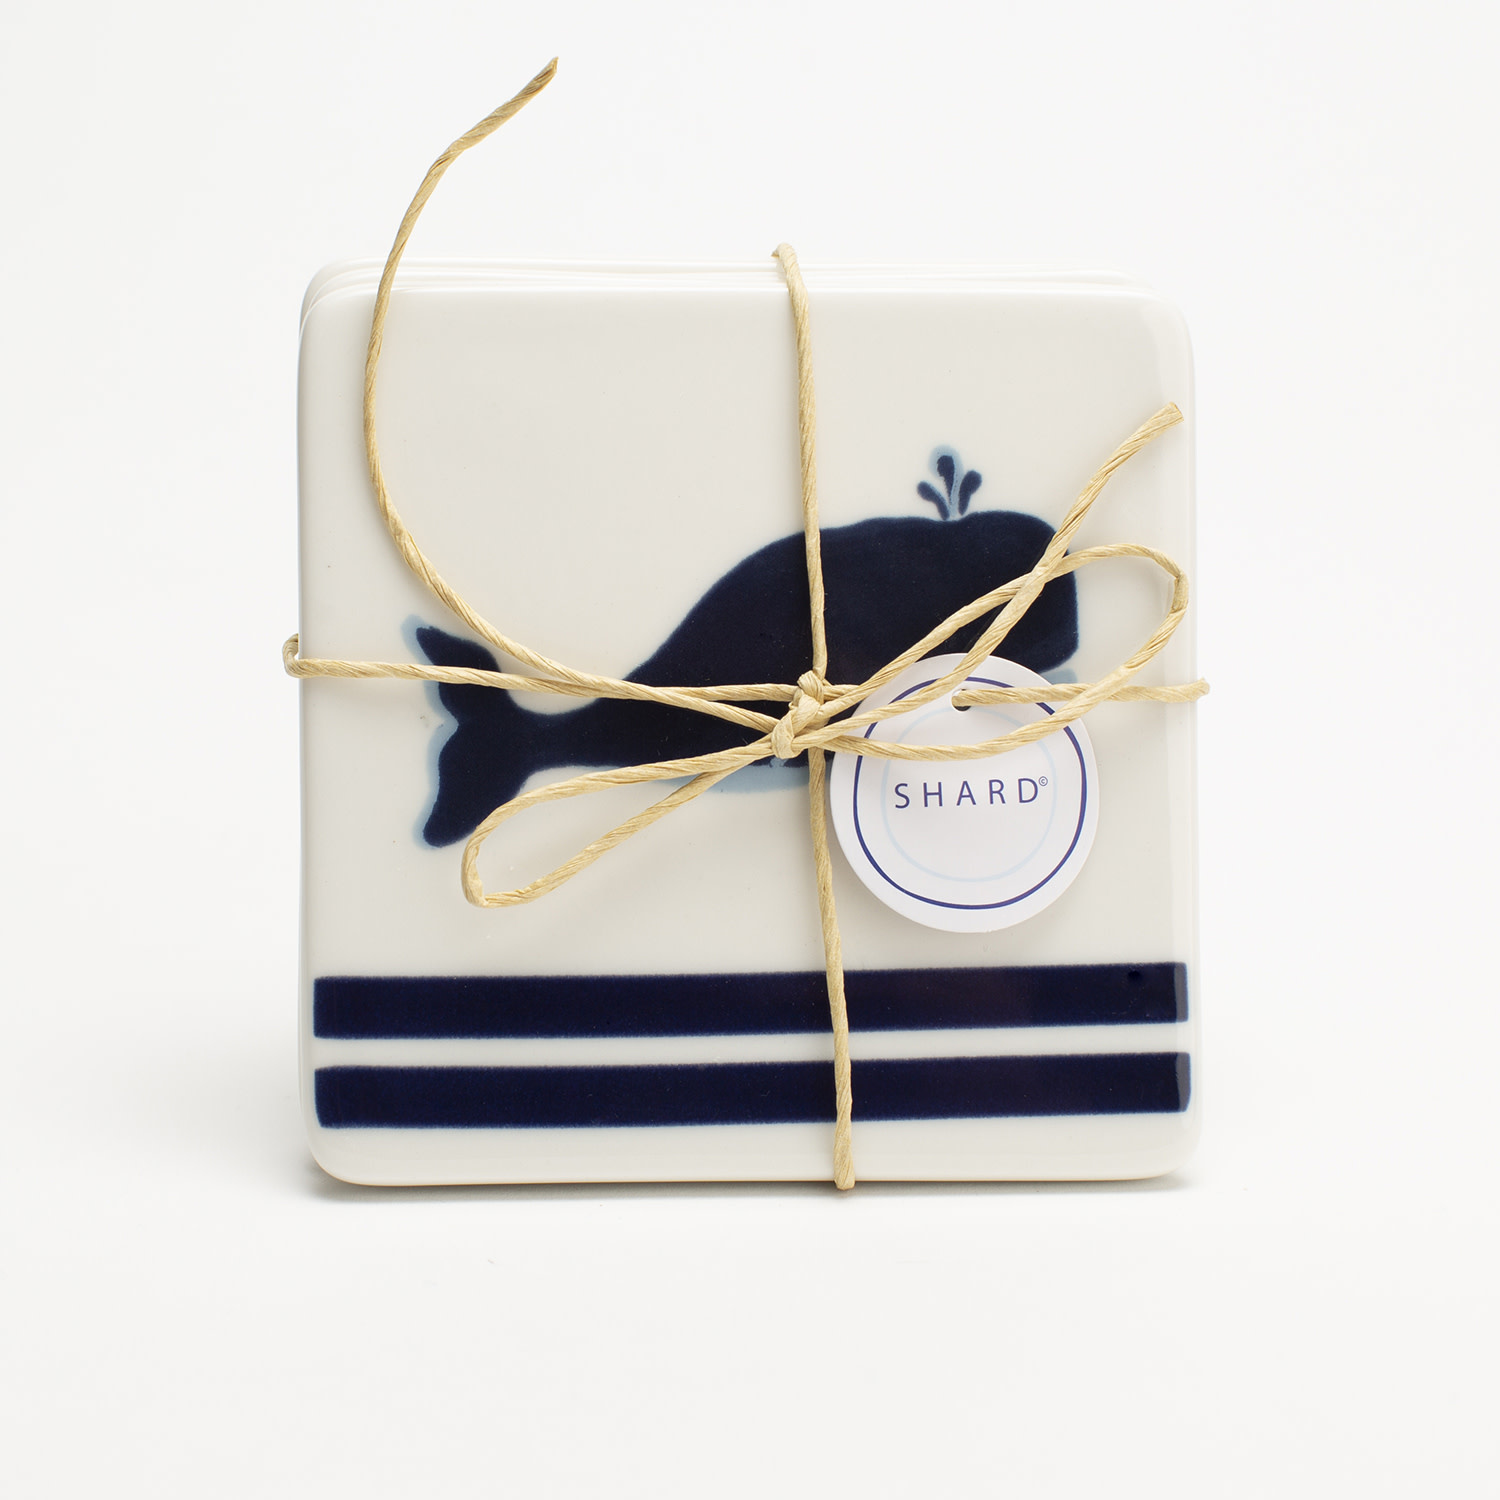 4 Piece Coaster Set - Blue Whale